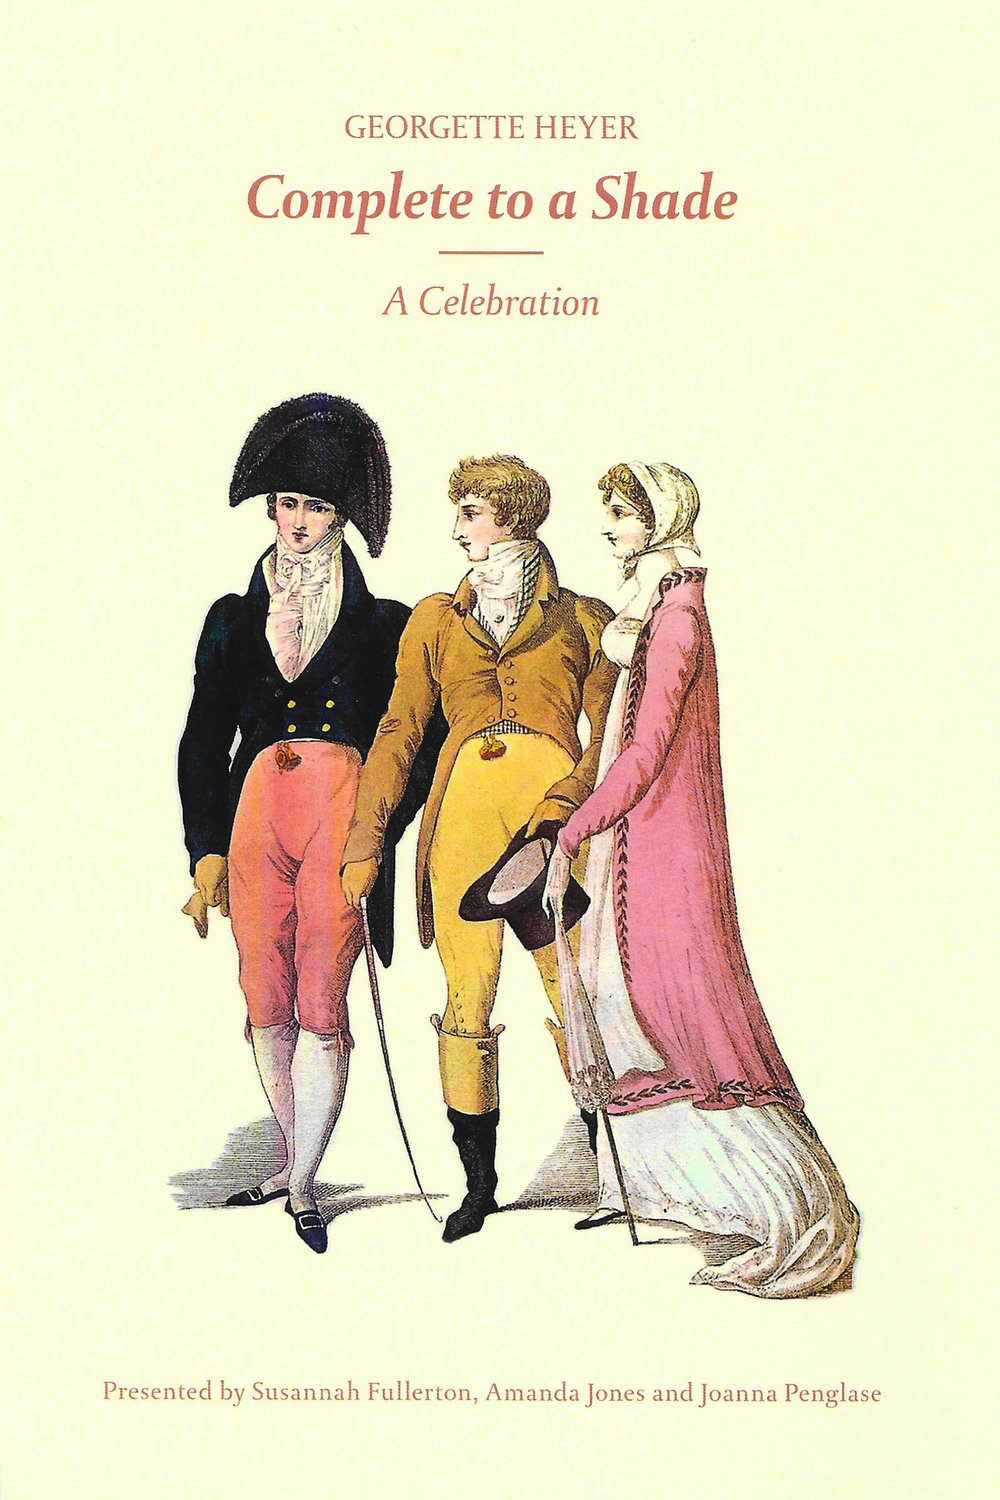 georgette-heyer-complete-to-a-shade-a-celebration-cover.jpg